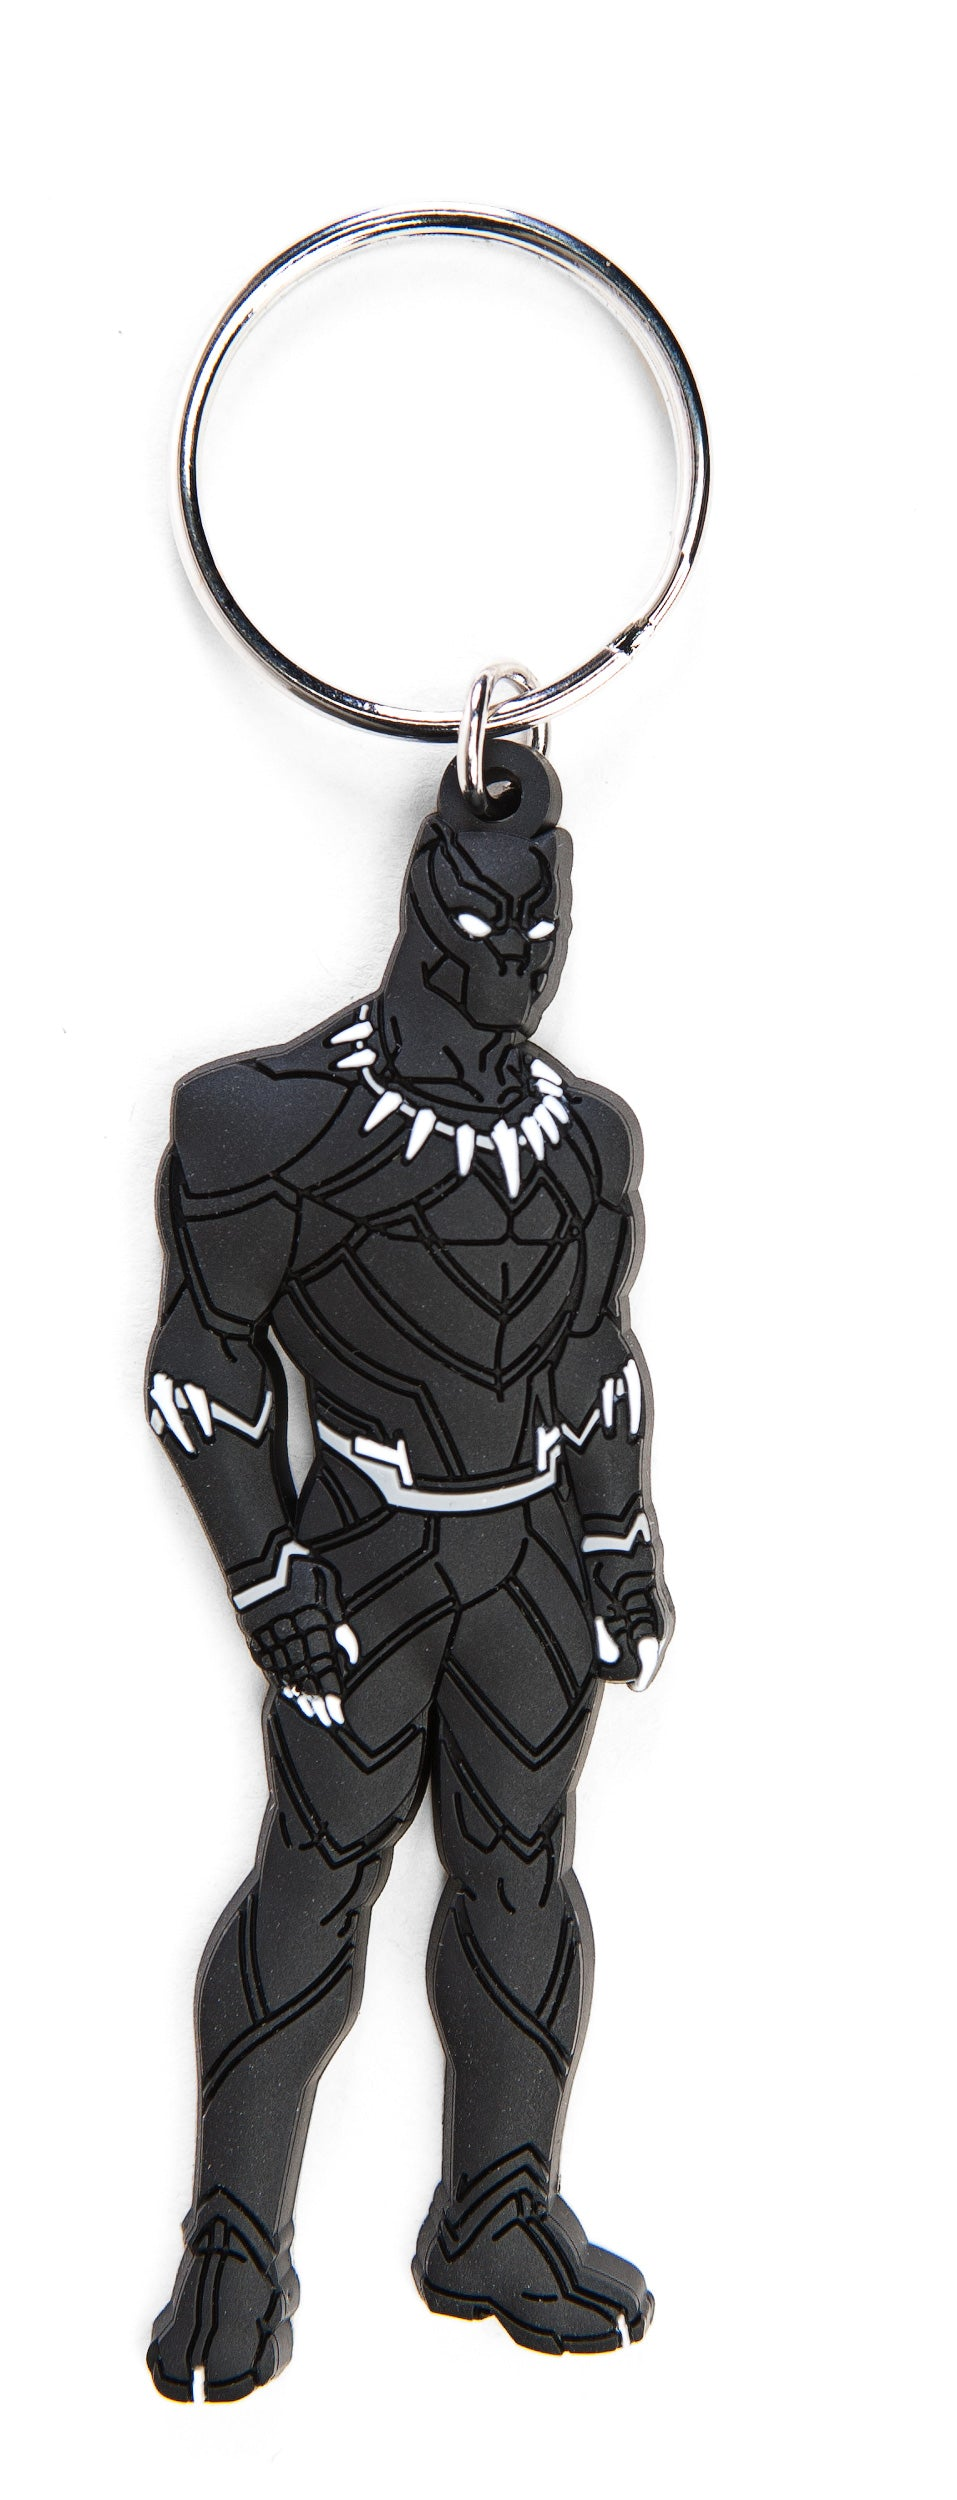 Black Panther Soft Touch Keyring from StraightOuttaWakanda.com